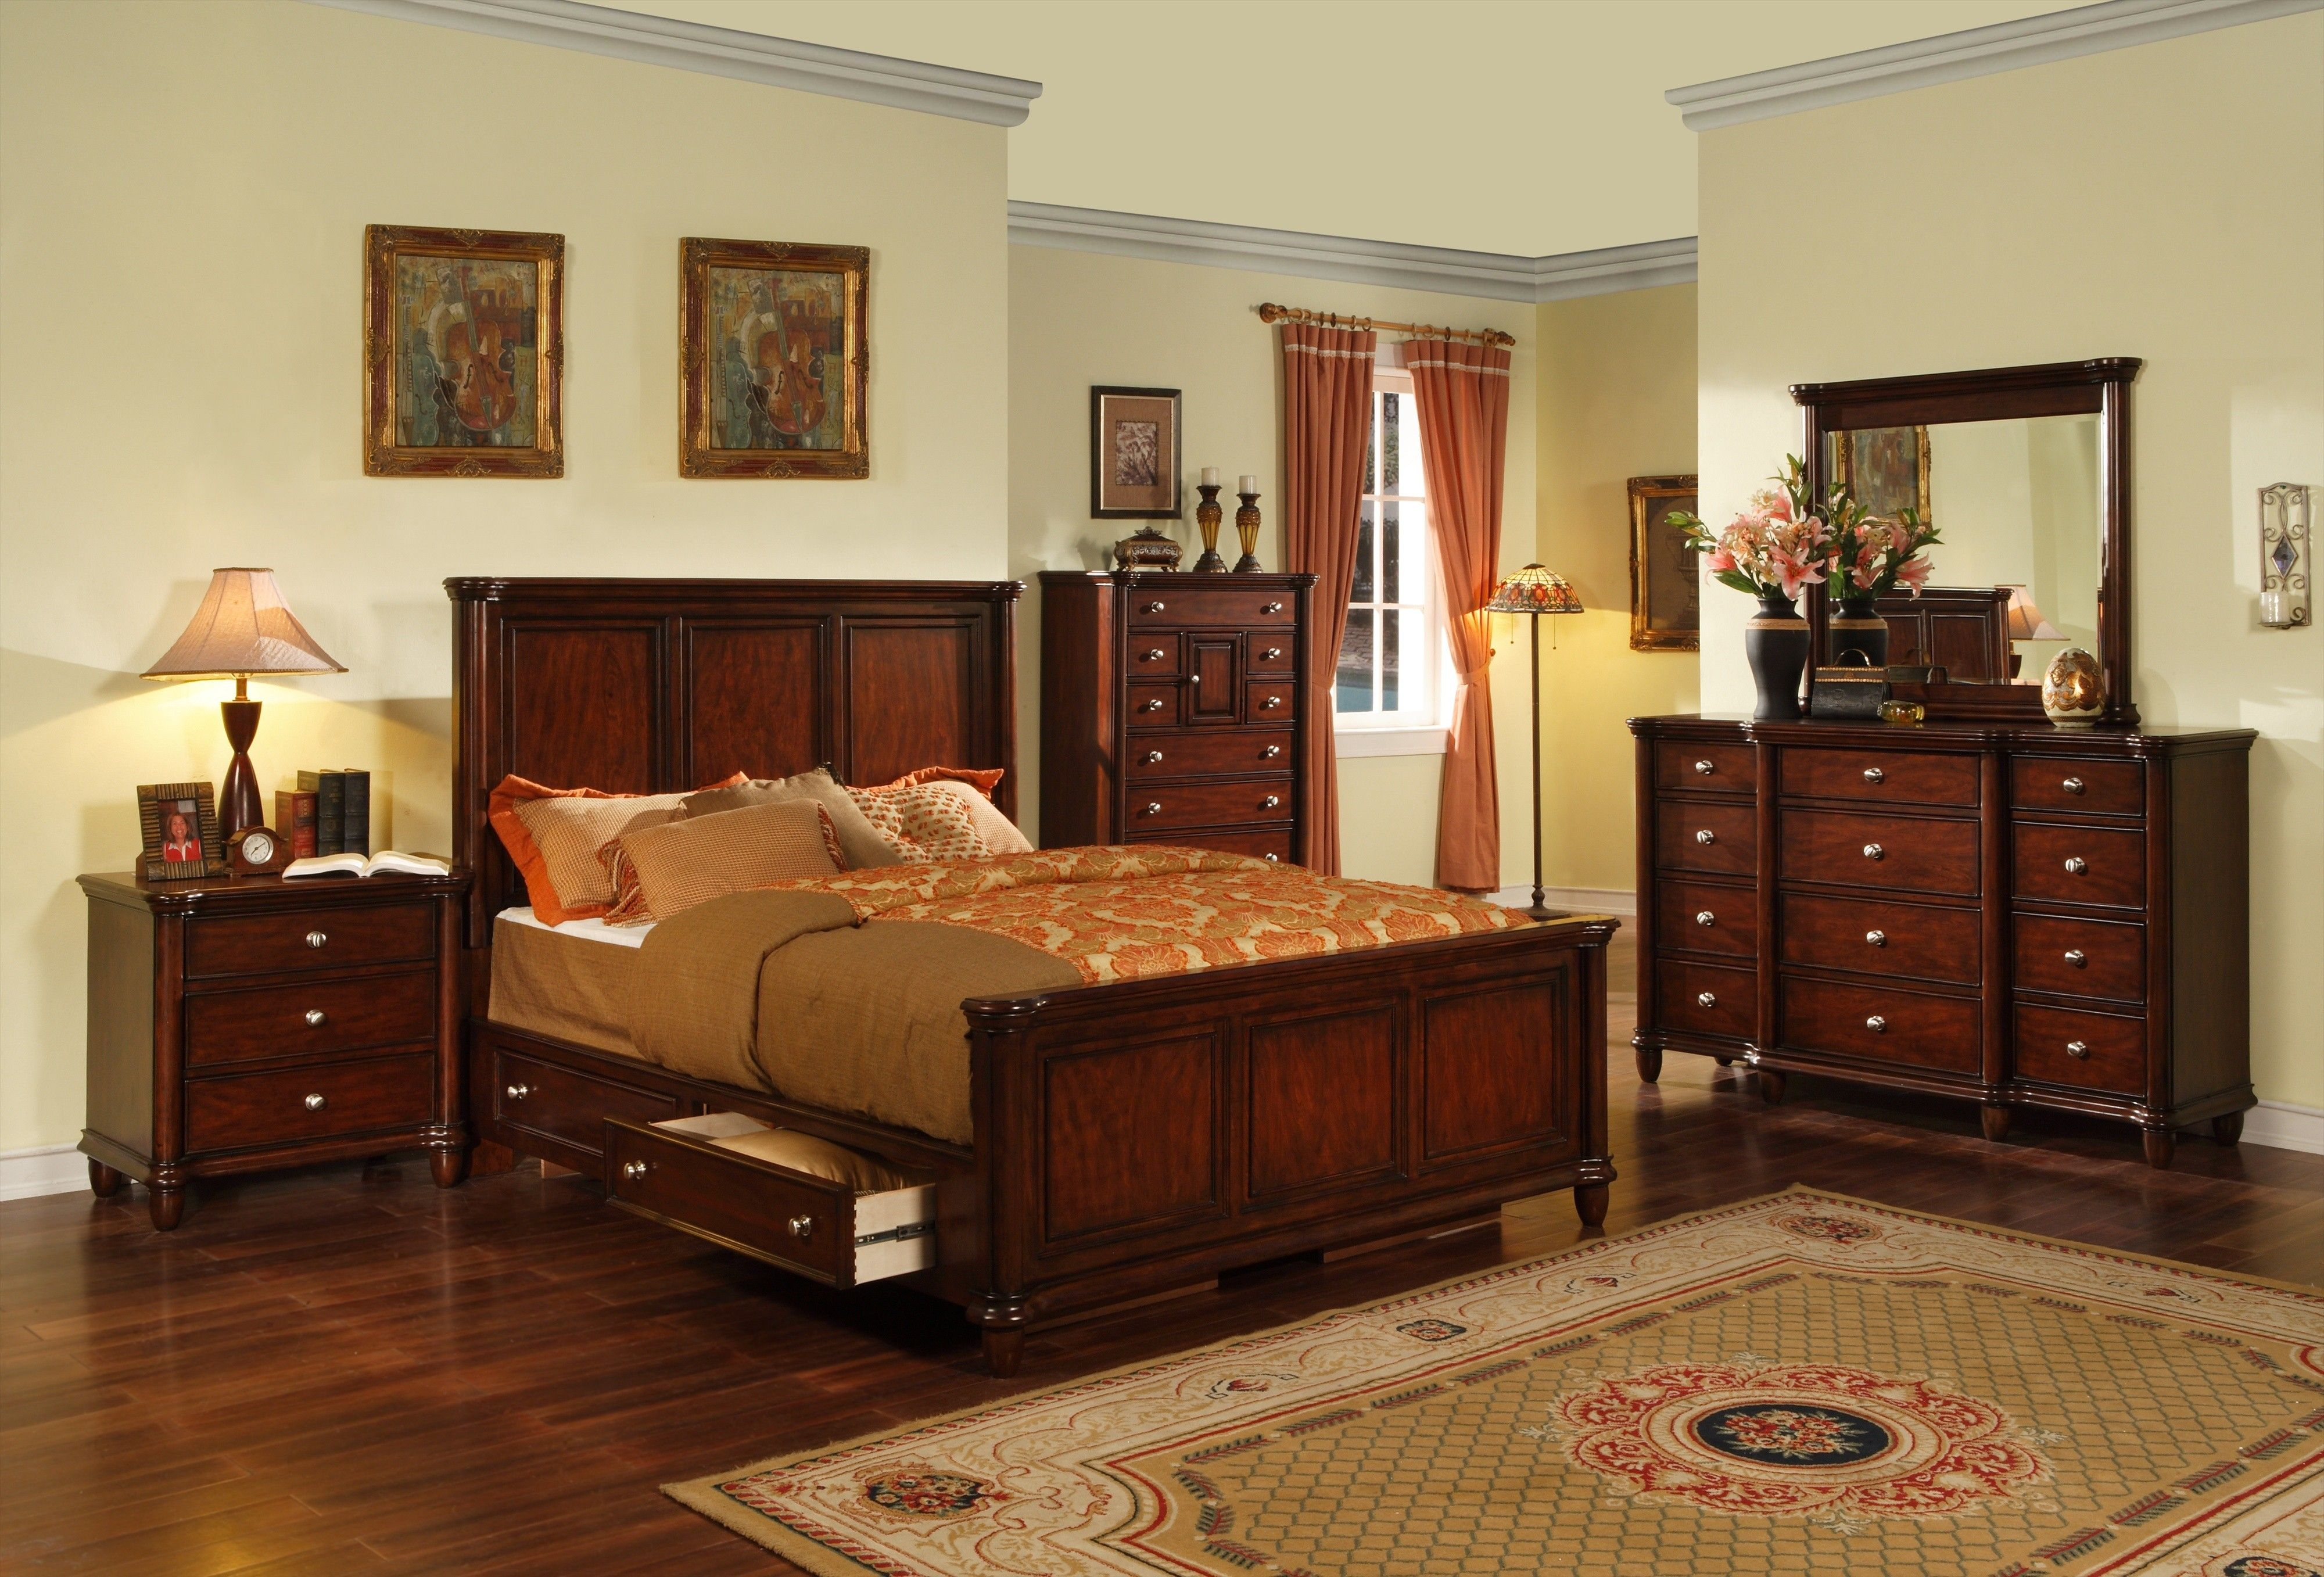 Hamilton Cherry King Bedroom Set Bedroom Sets Bedroom Gallery intended for dimensions 4000 X 2714